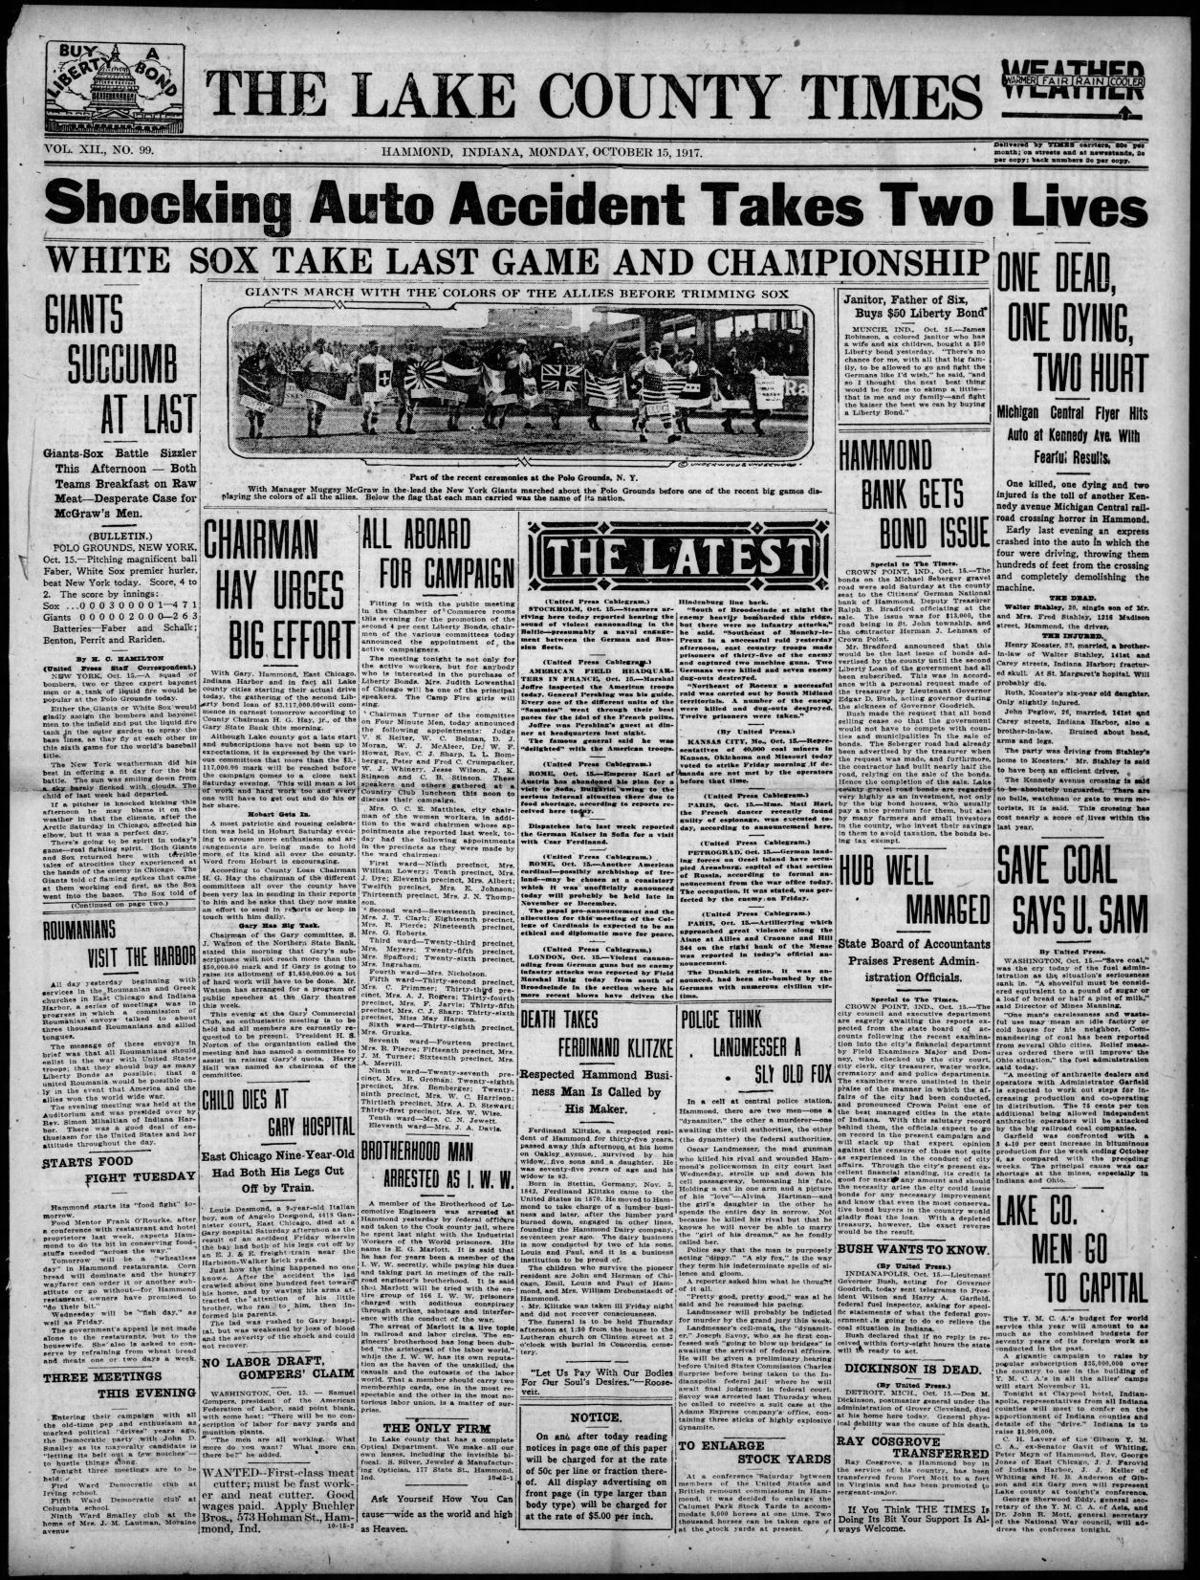 Oct. 15, 1917: White Sox Take Last Game And Championship